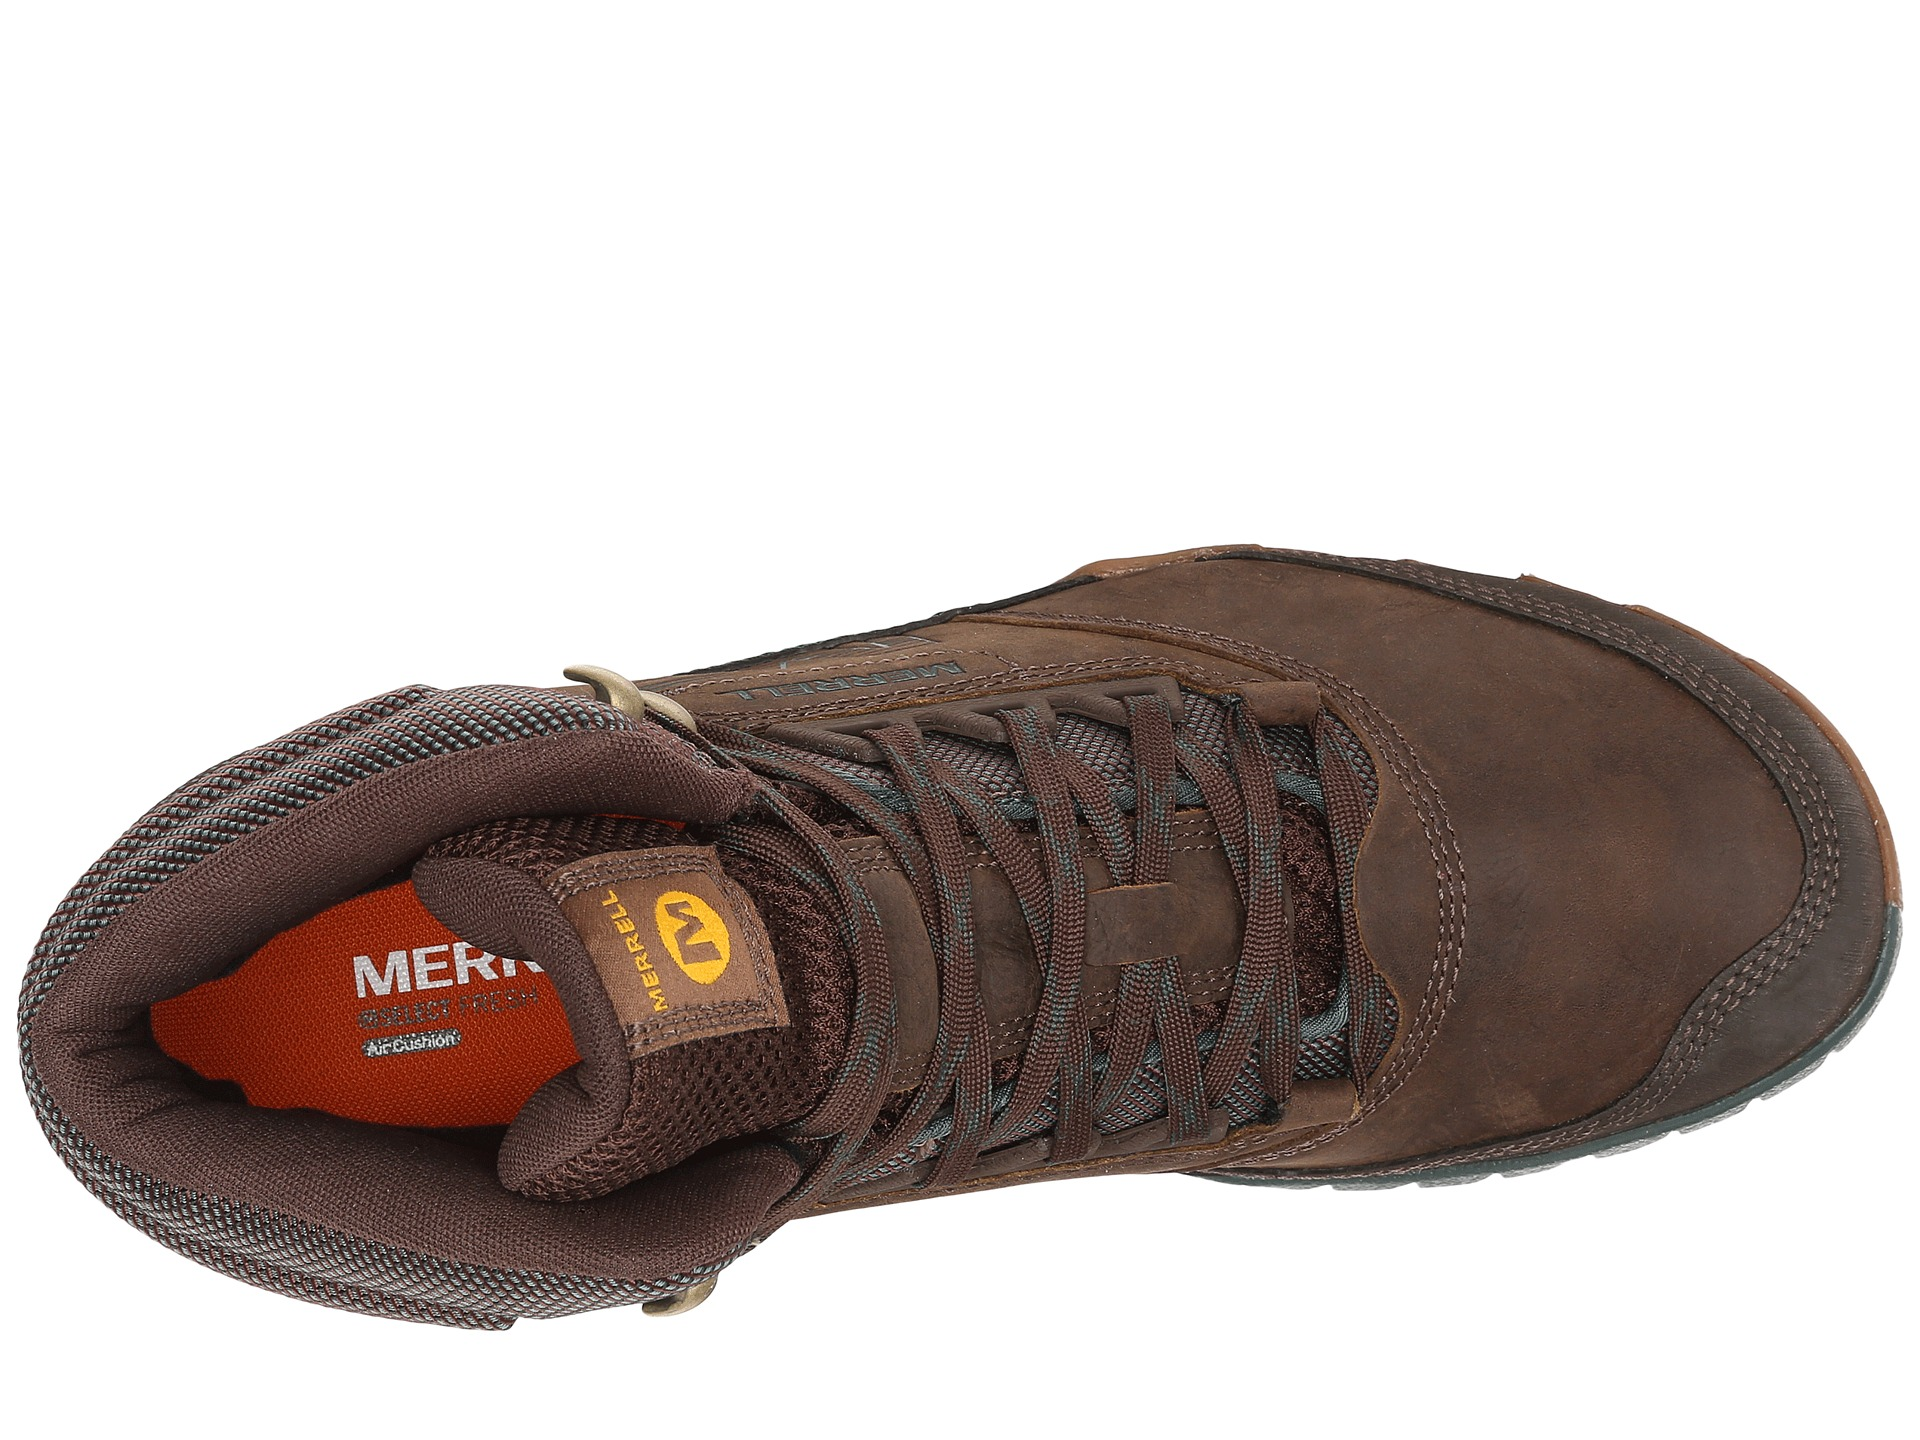 N S Annex Mid Gore Tex Hiking Shoe